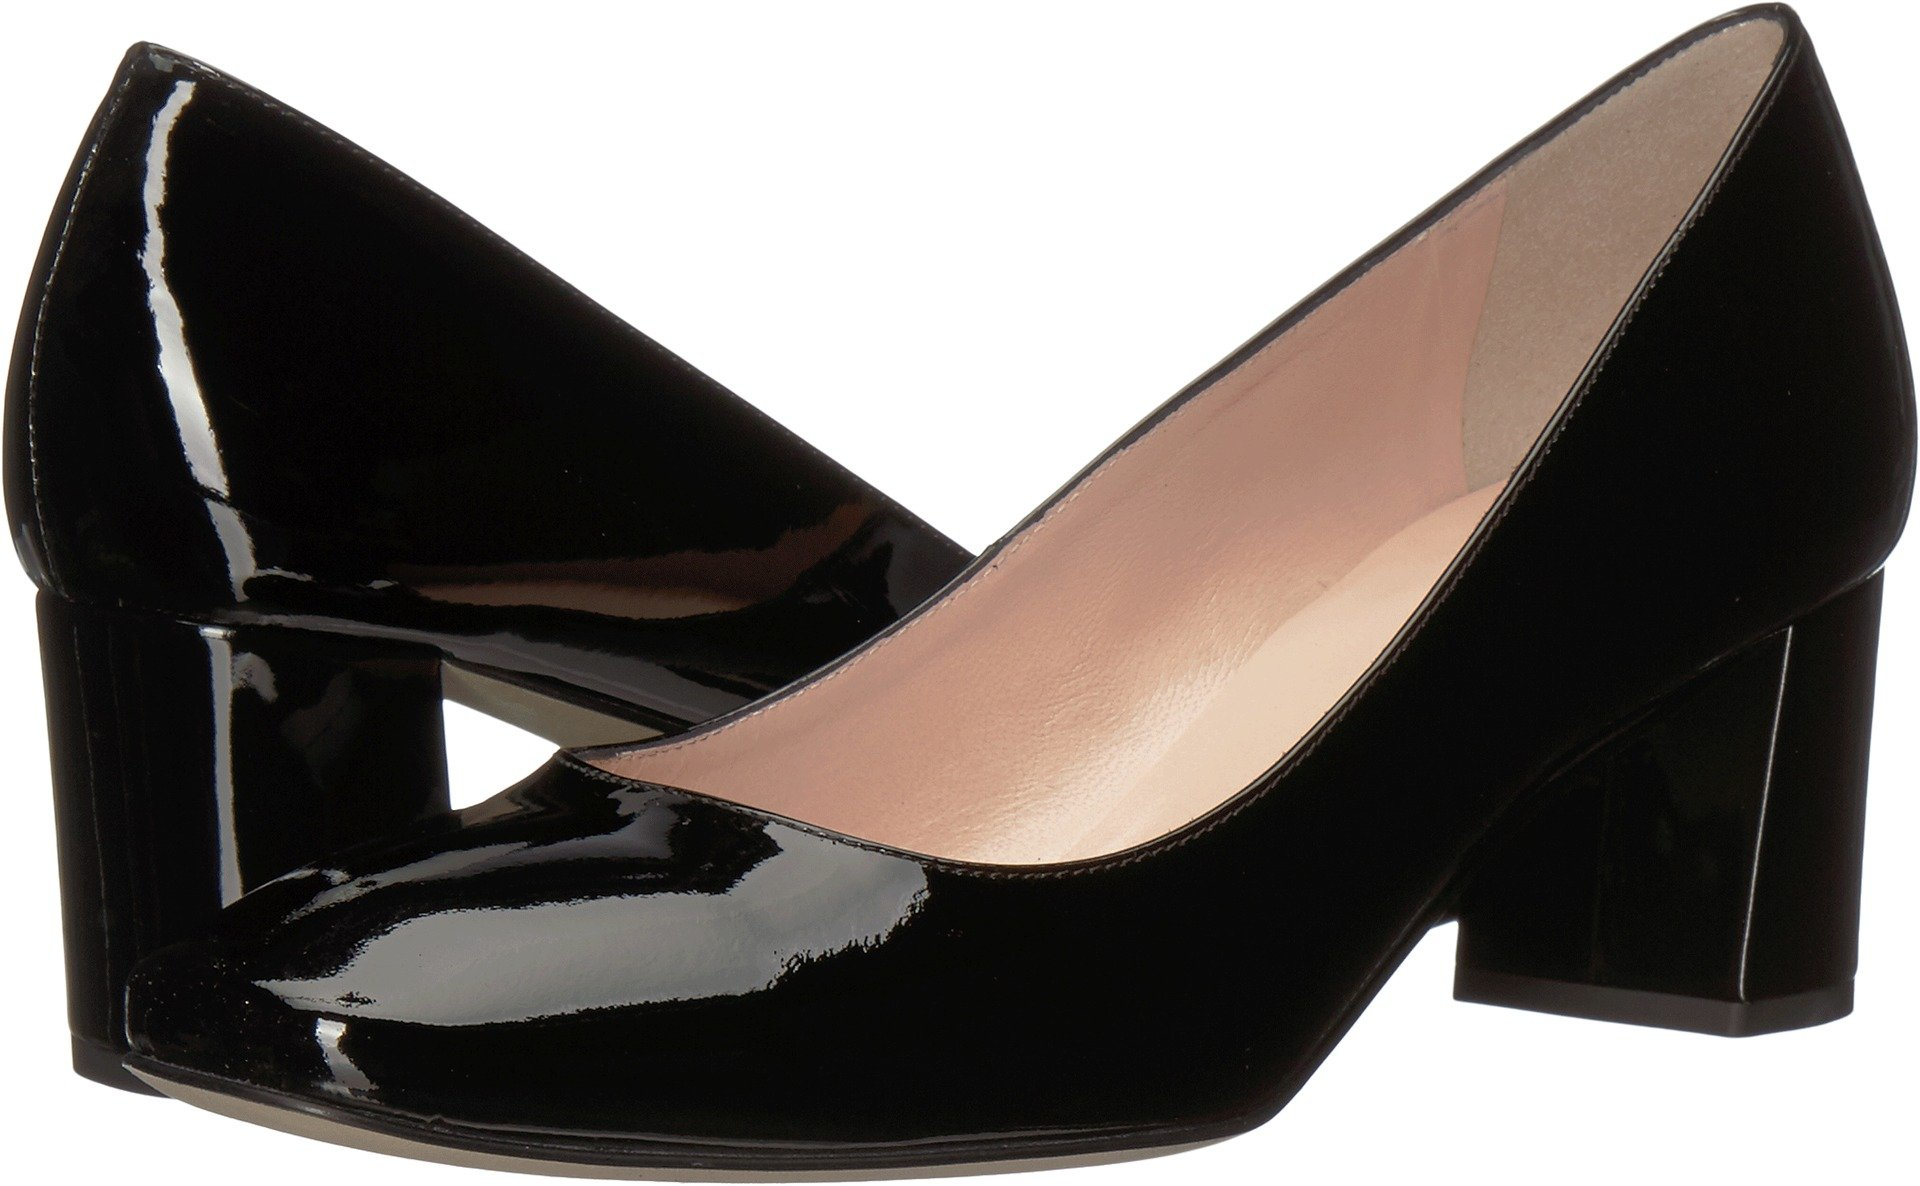 Kate Spade New York Women's Dolores Black Patent 8.5 M US